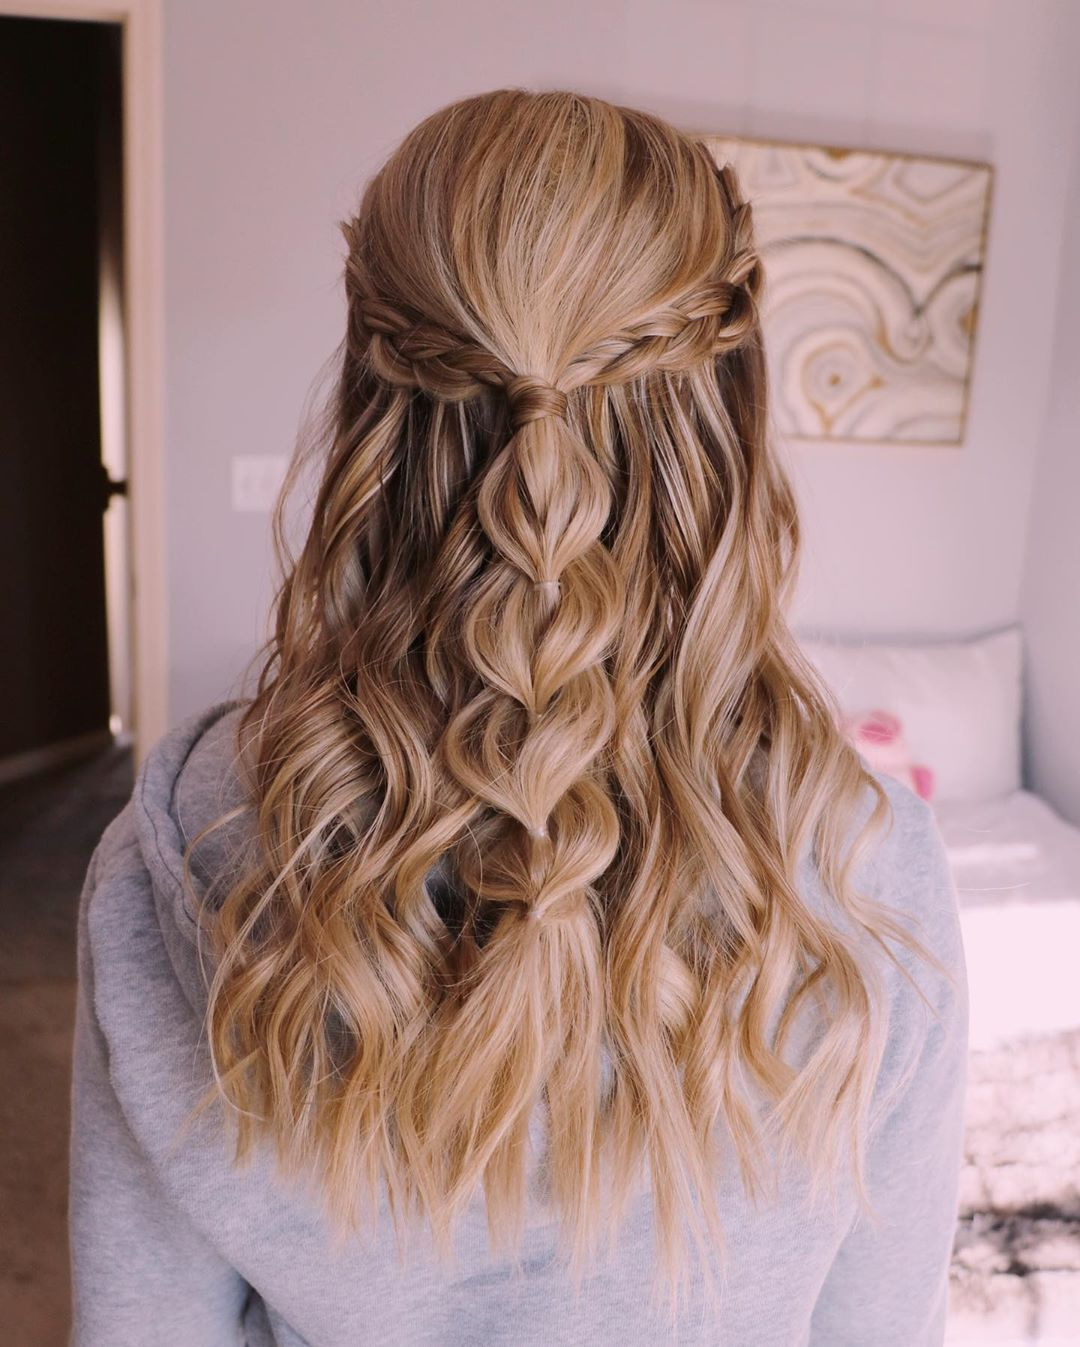 Prom Hairstyles Up - davaocityguy.me | Hair styles, Cute ...